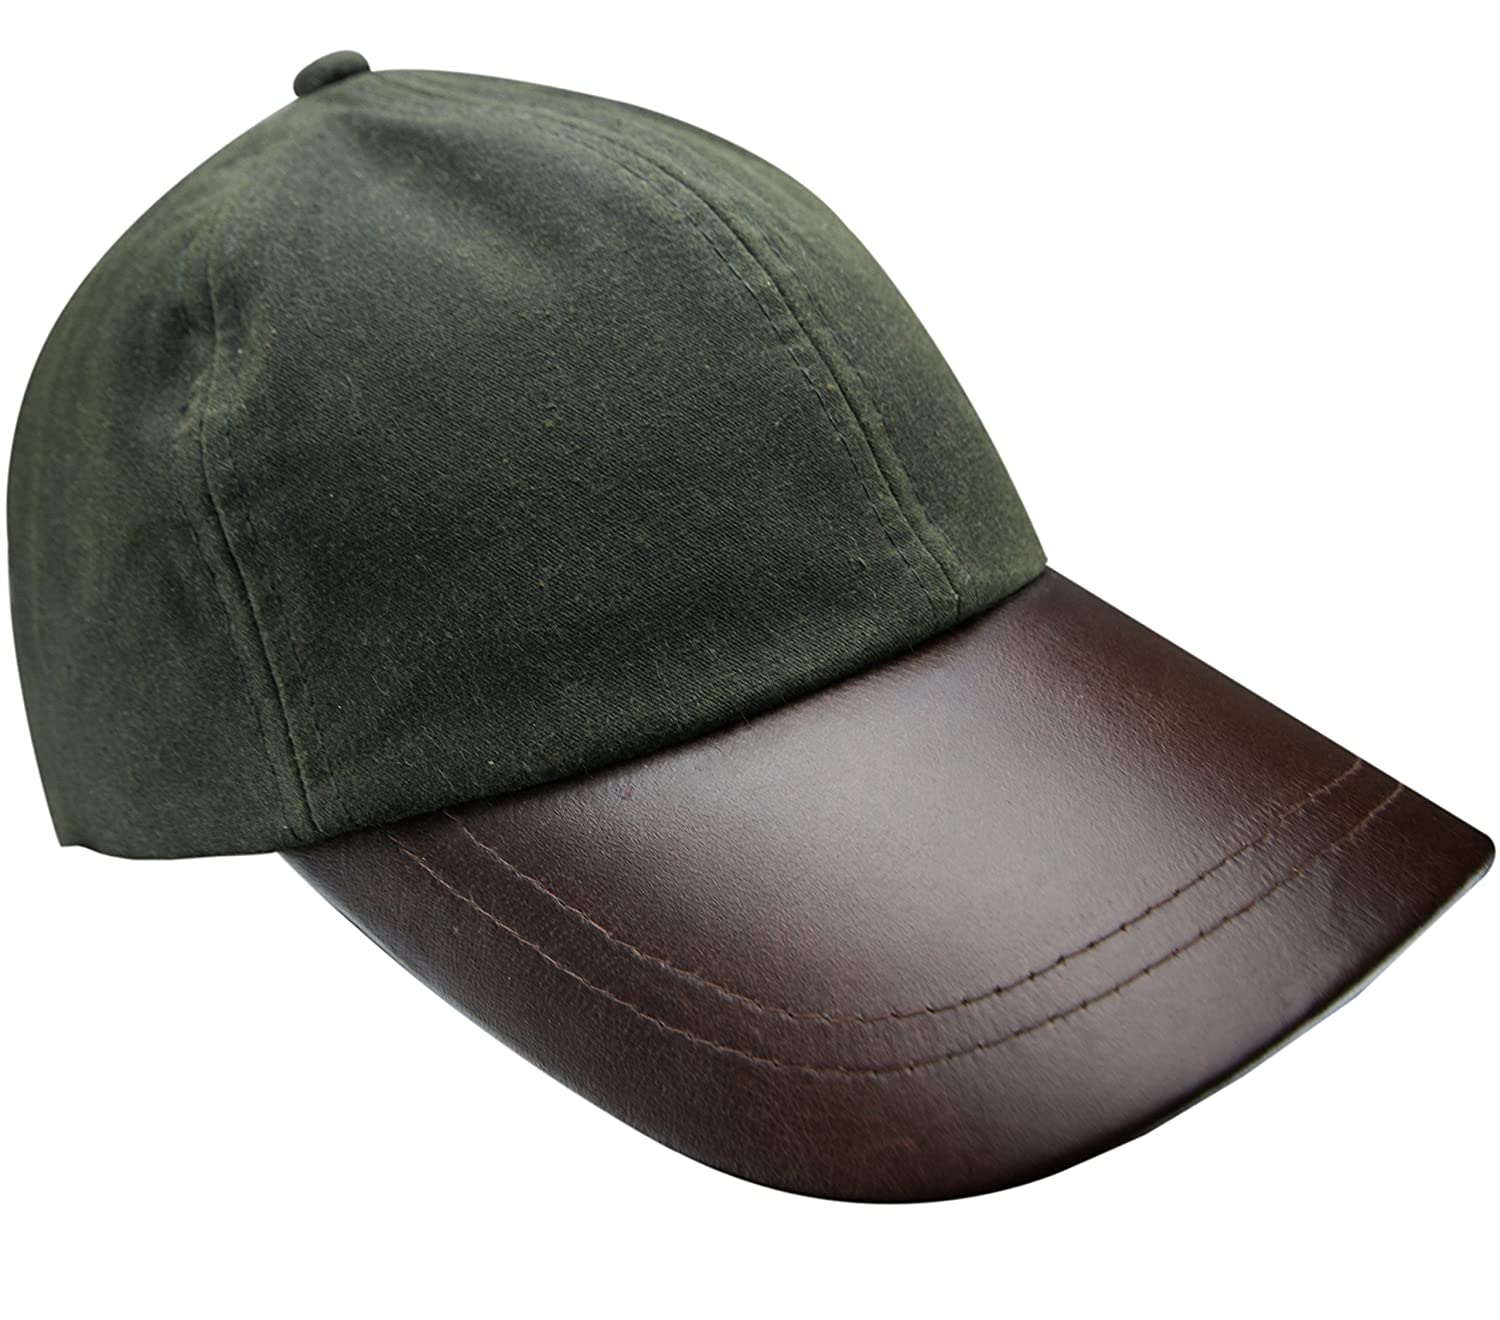 f628f2cbf4e47 New Mens Wax Baseball Cap Leather Peak Fishing Shooting Outdoor Waxed  Cotton Hat Brown Black Light Green Dark Green (Black)  Amazon.co.uk   Clothing